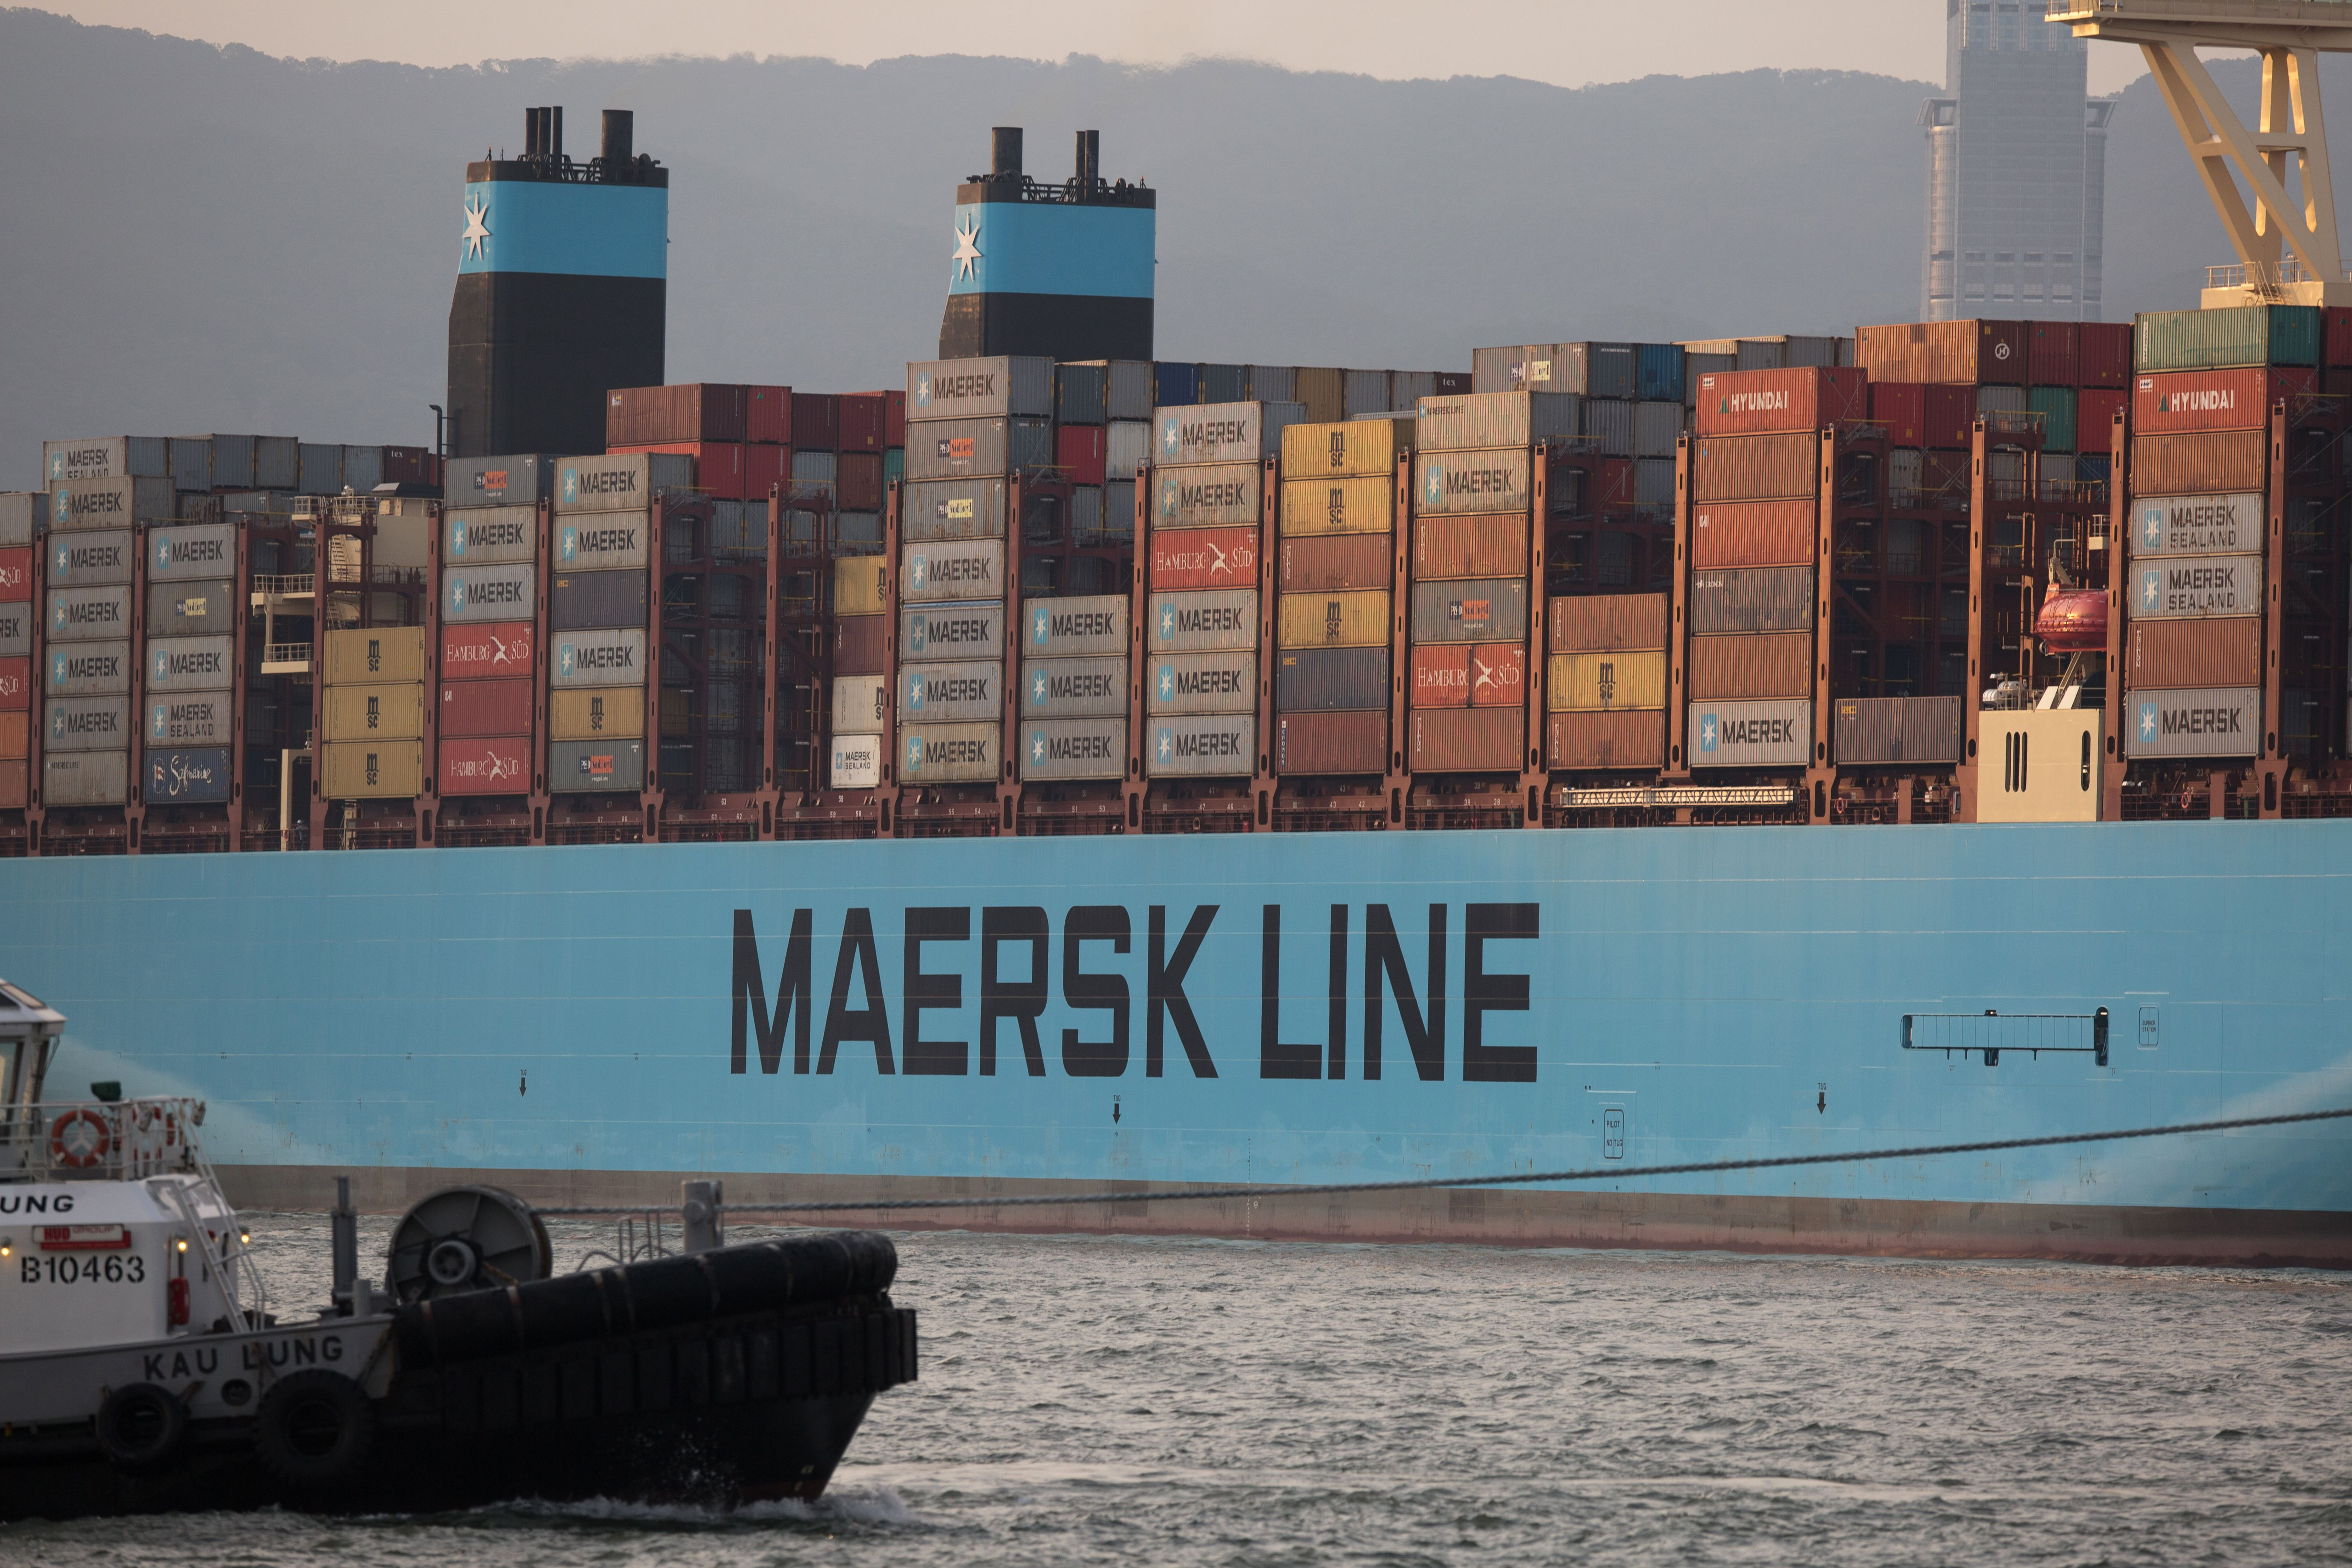 A container ships sails to the Kwai Tsing Container Terminals in Hong Kong, 11 July 2018. According to reports, Hong Kong's finance minister Paul Chan said the short-term impact on the city of China's escalating trade war with the United States would be limited to a dip in growth of just 0.1 or 0.2 of a percentage point. According to reports, US President Donald Trump announced on 10 July that US is preparing to impose 10 percent tariffs worth 200 billion US dollars on imported goods from China.A container ships sails the East lamma Channel, Hong Kong, China - 11 Jul 2018